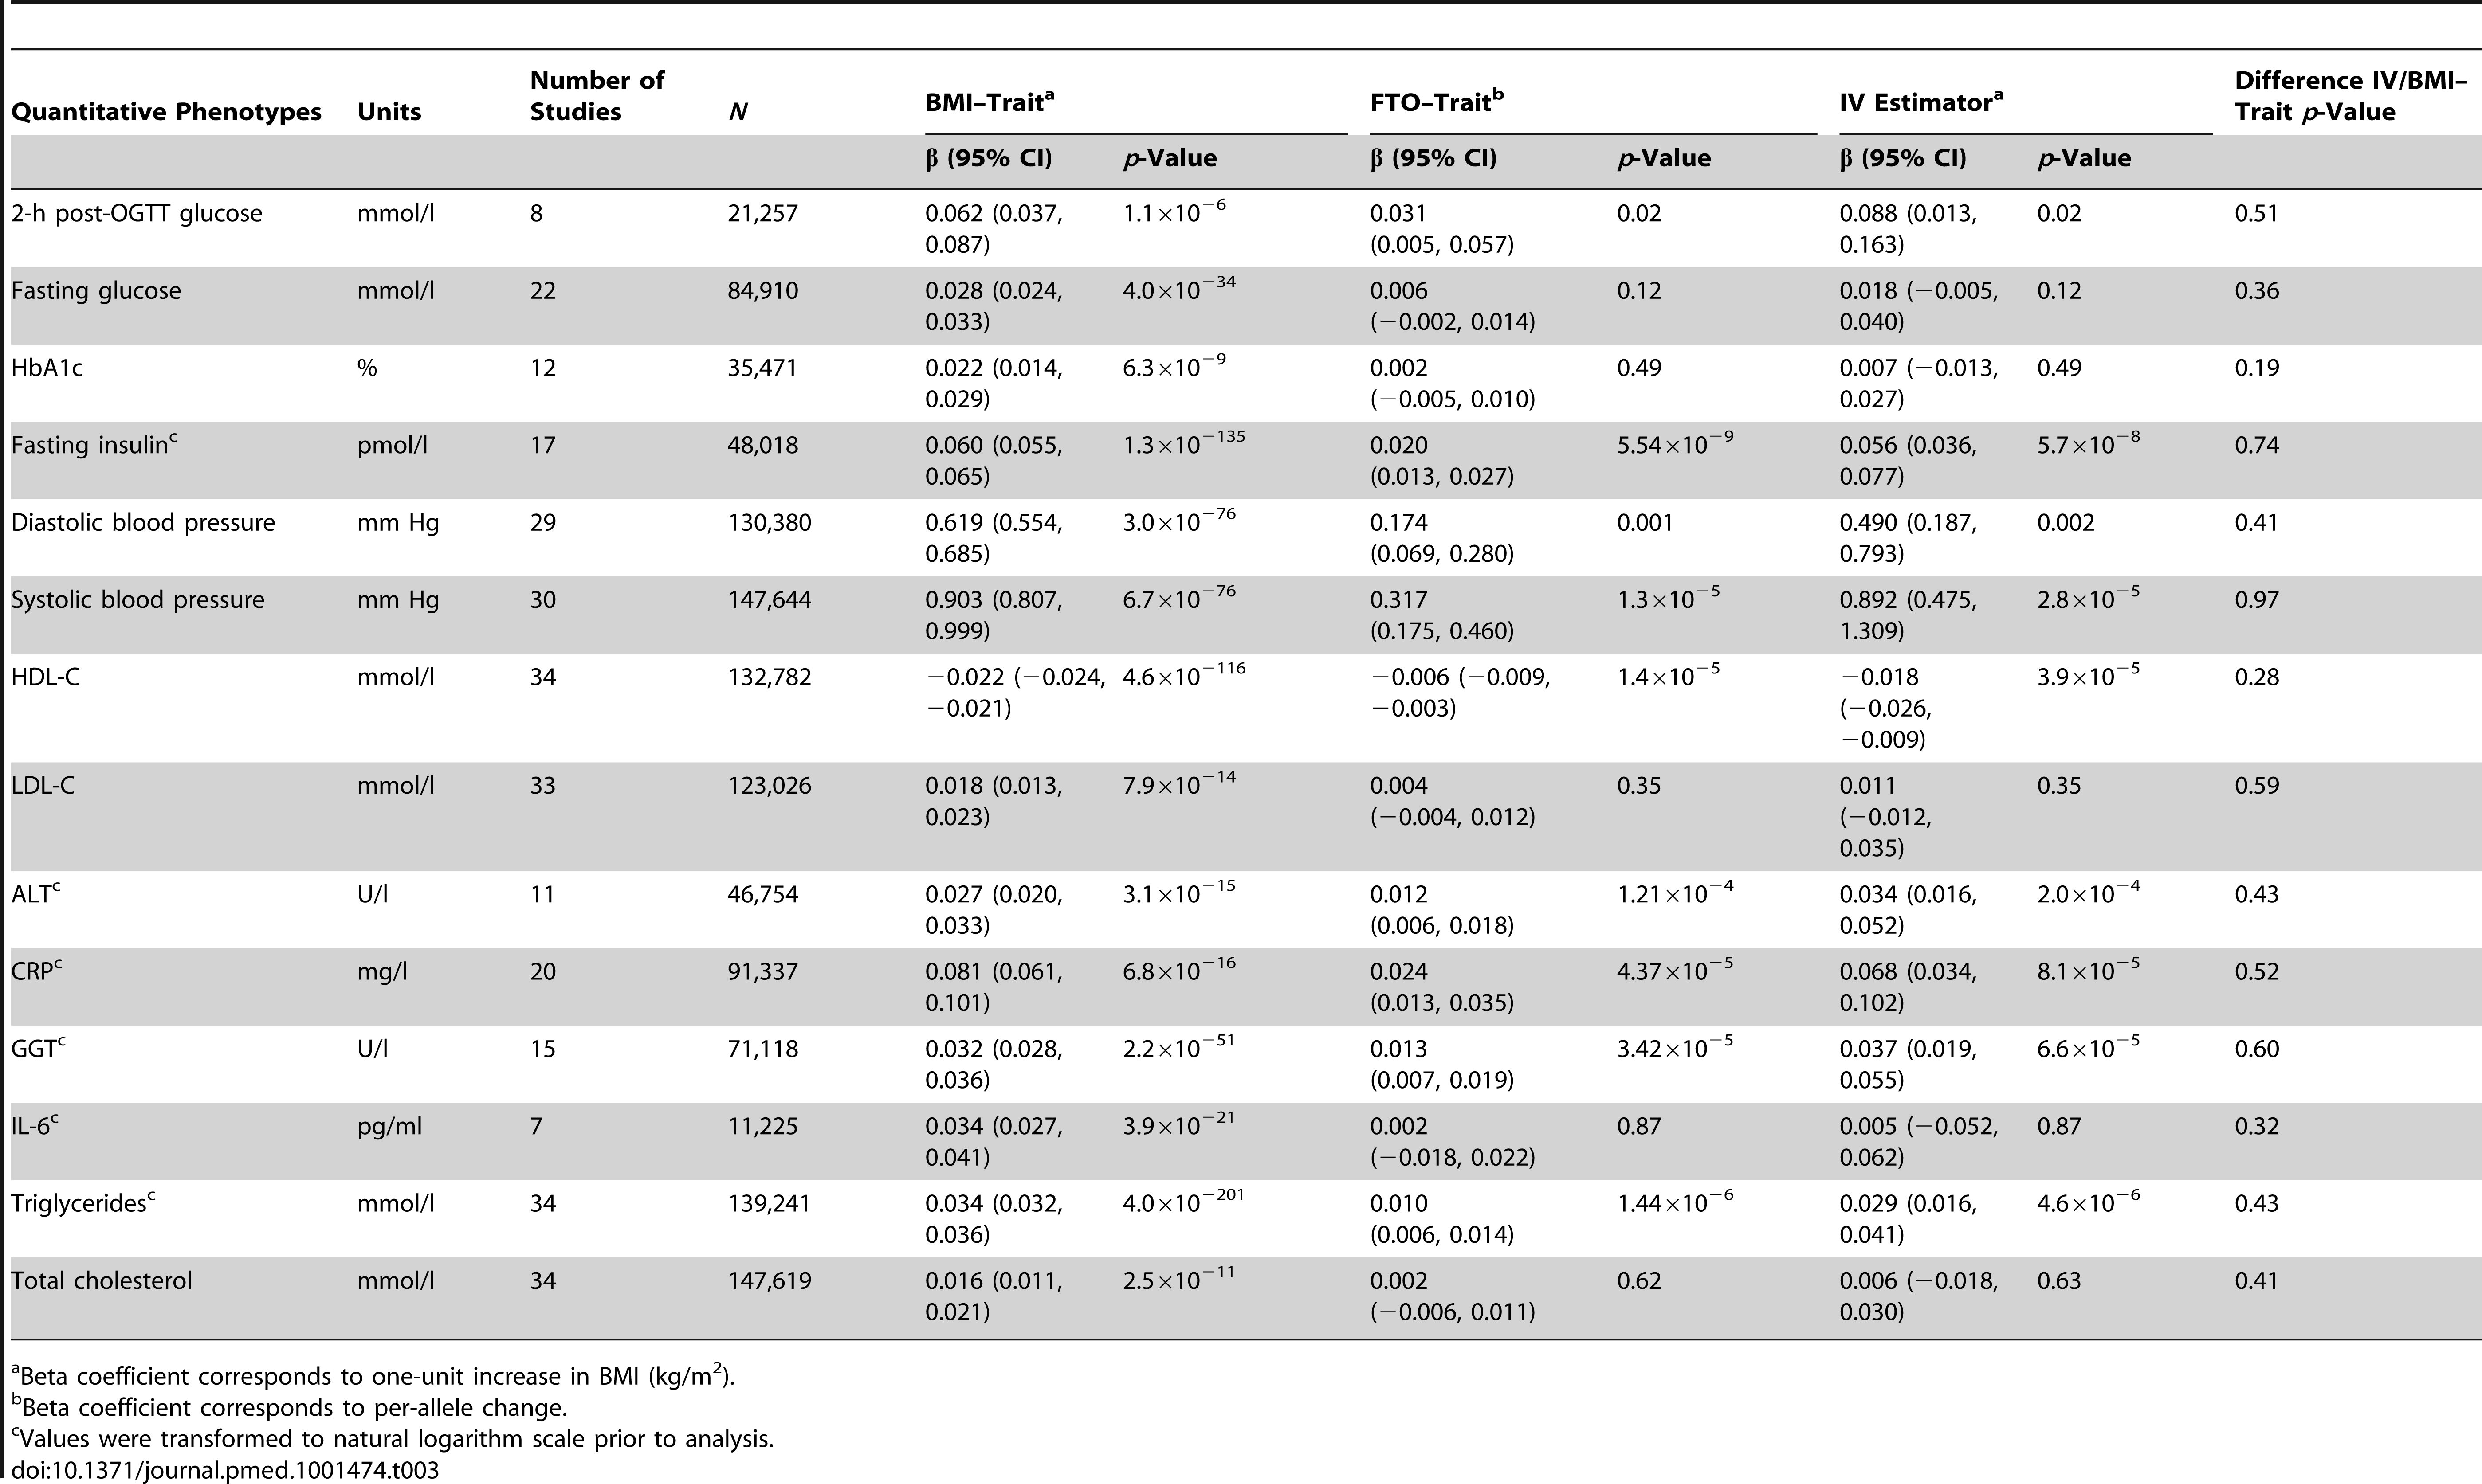 Meta-analysis results of Mendelian randomization analyses on effect of <i>FTO</i>-derived adiposity on cardiovascular and metabolic disease: quantitative phenotypes.